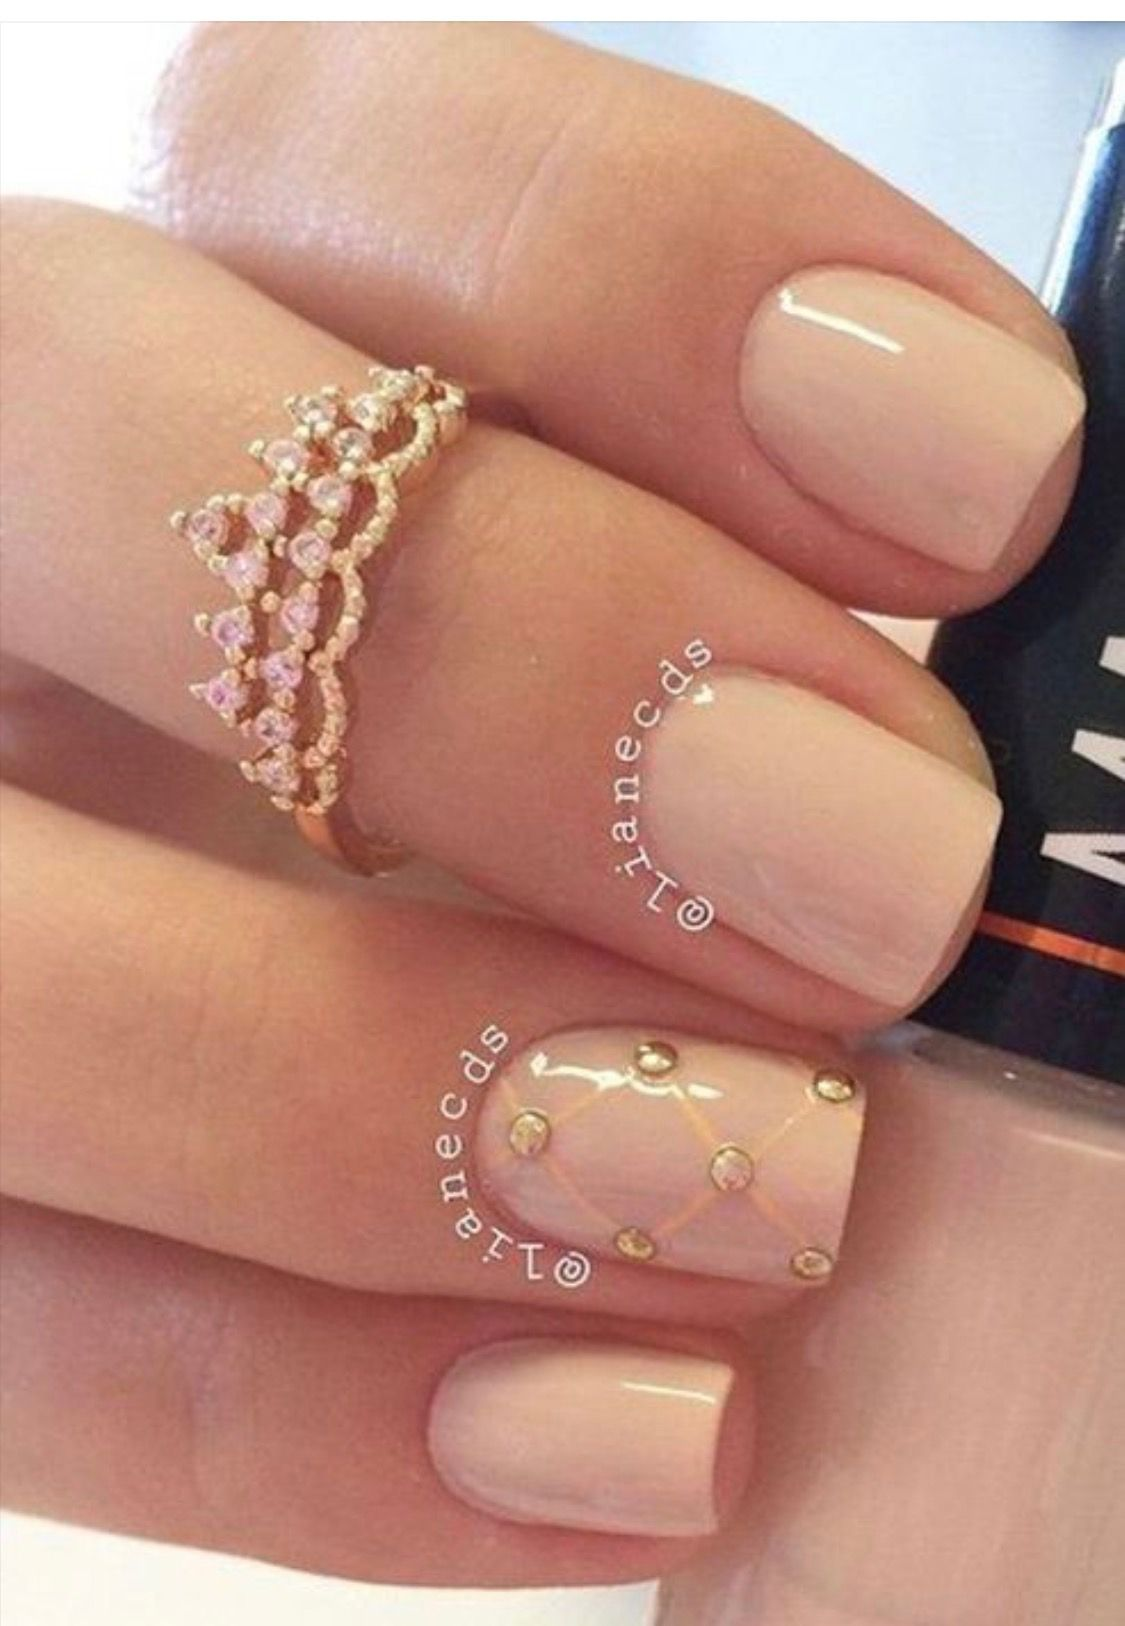 Pin by Kathy West on nails | Pinterest | Gorgeous nails, Manicure ...